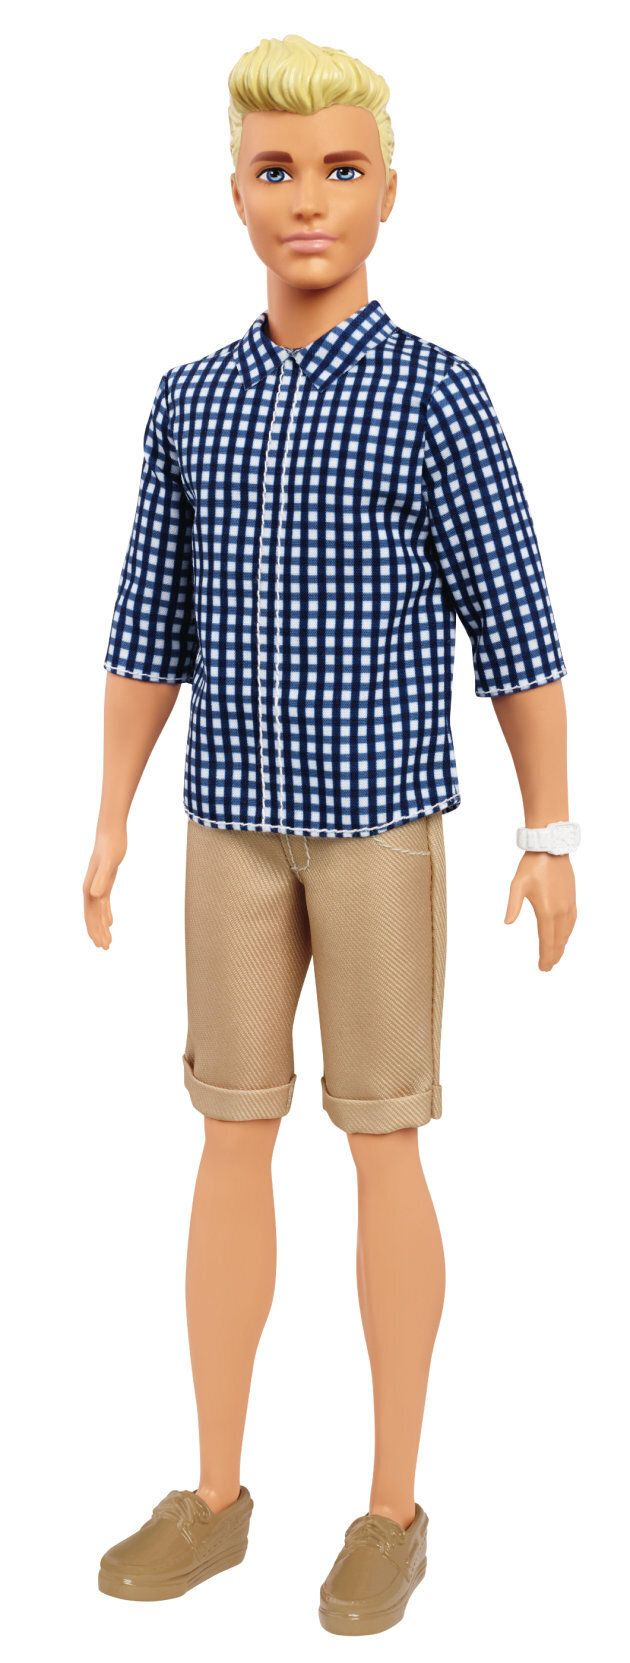 Mattel Unveils New Line Of Ken Dolls With Different Bodies, Skin Tones And